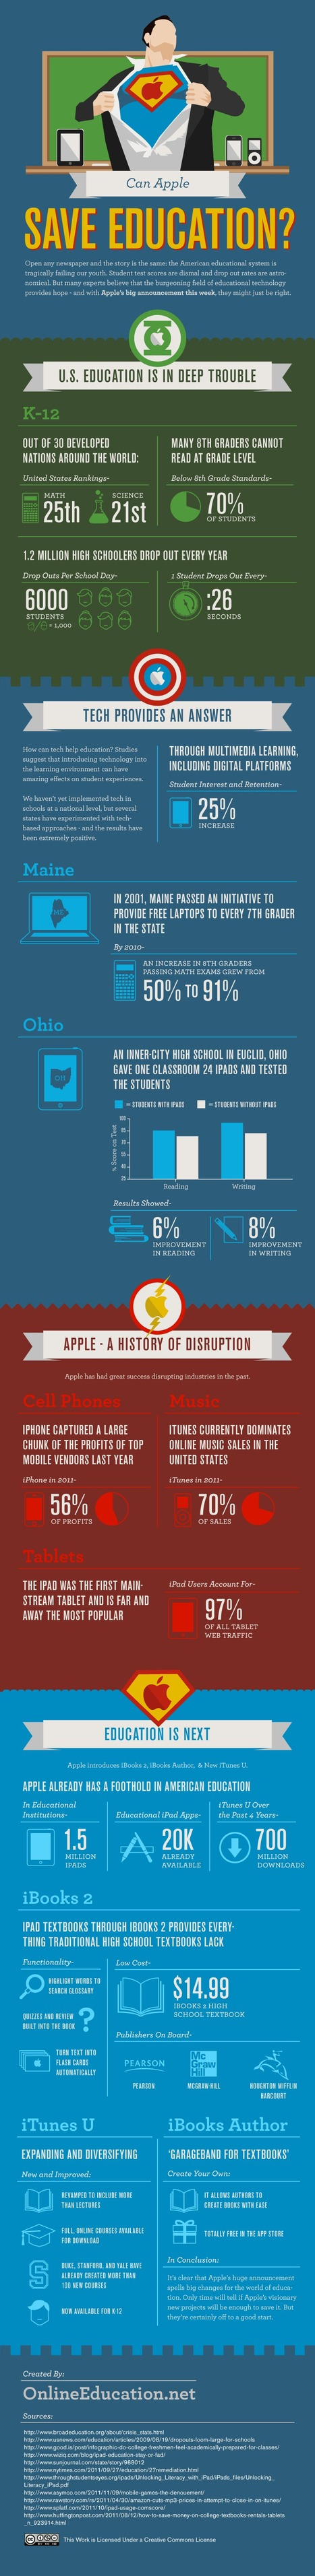 ¿Puede Apple salvar la enseñanza? #infografia #infographic #apple #education | Educación a Distancia (EaD) | Scoop.it